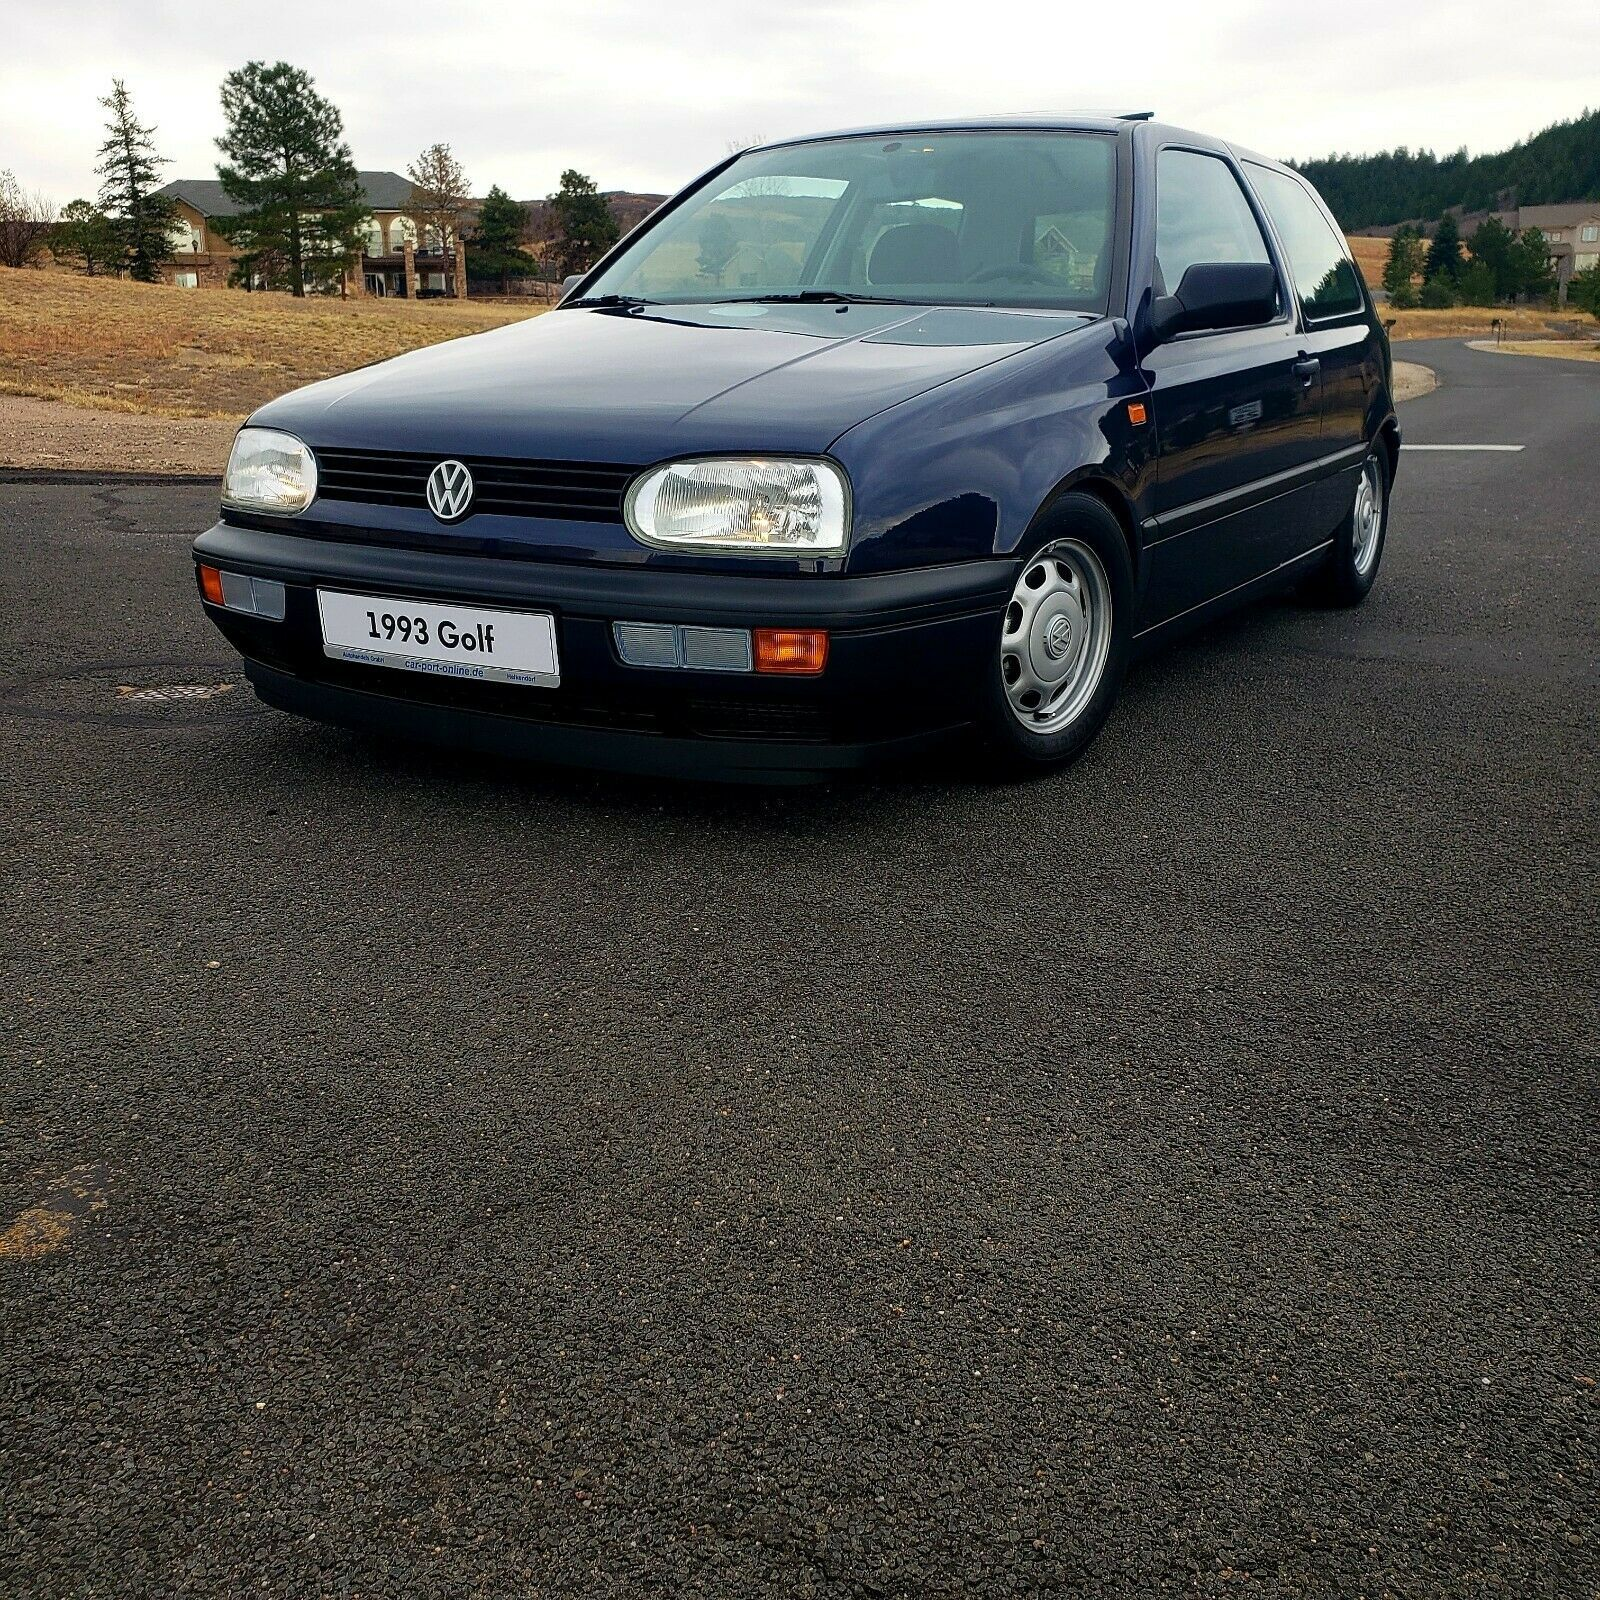 1993 Volkswagen Golf CL